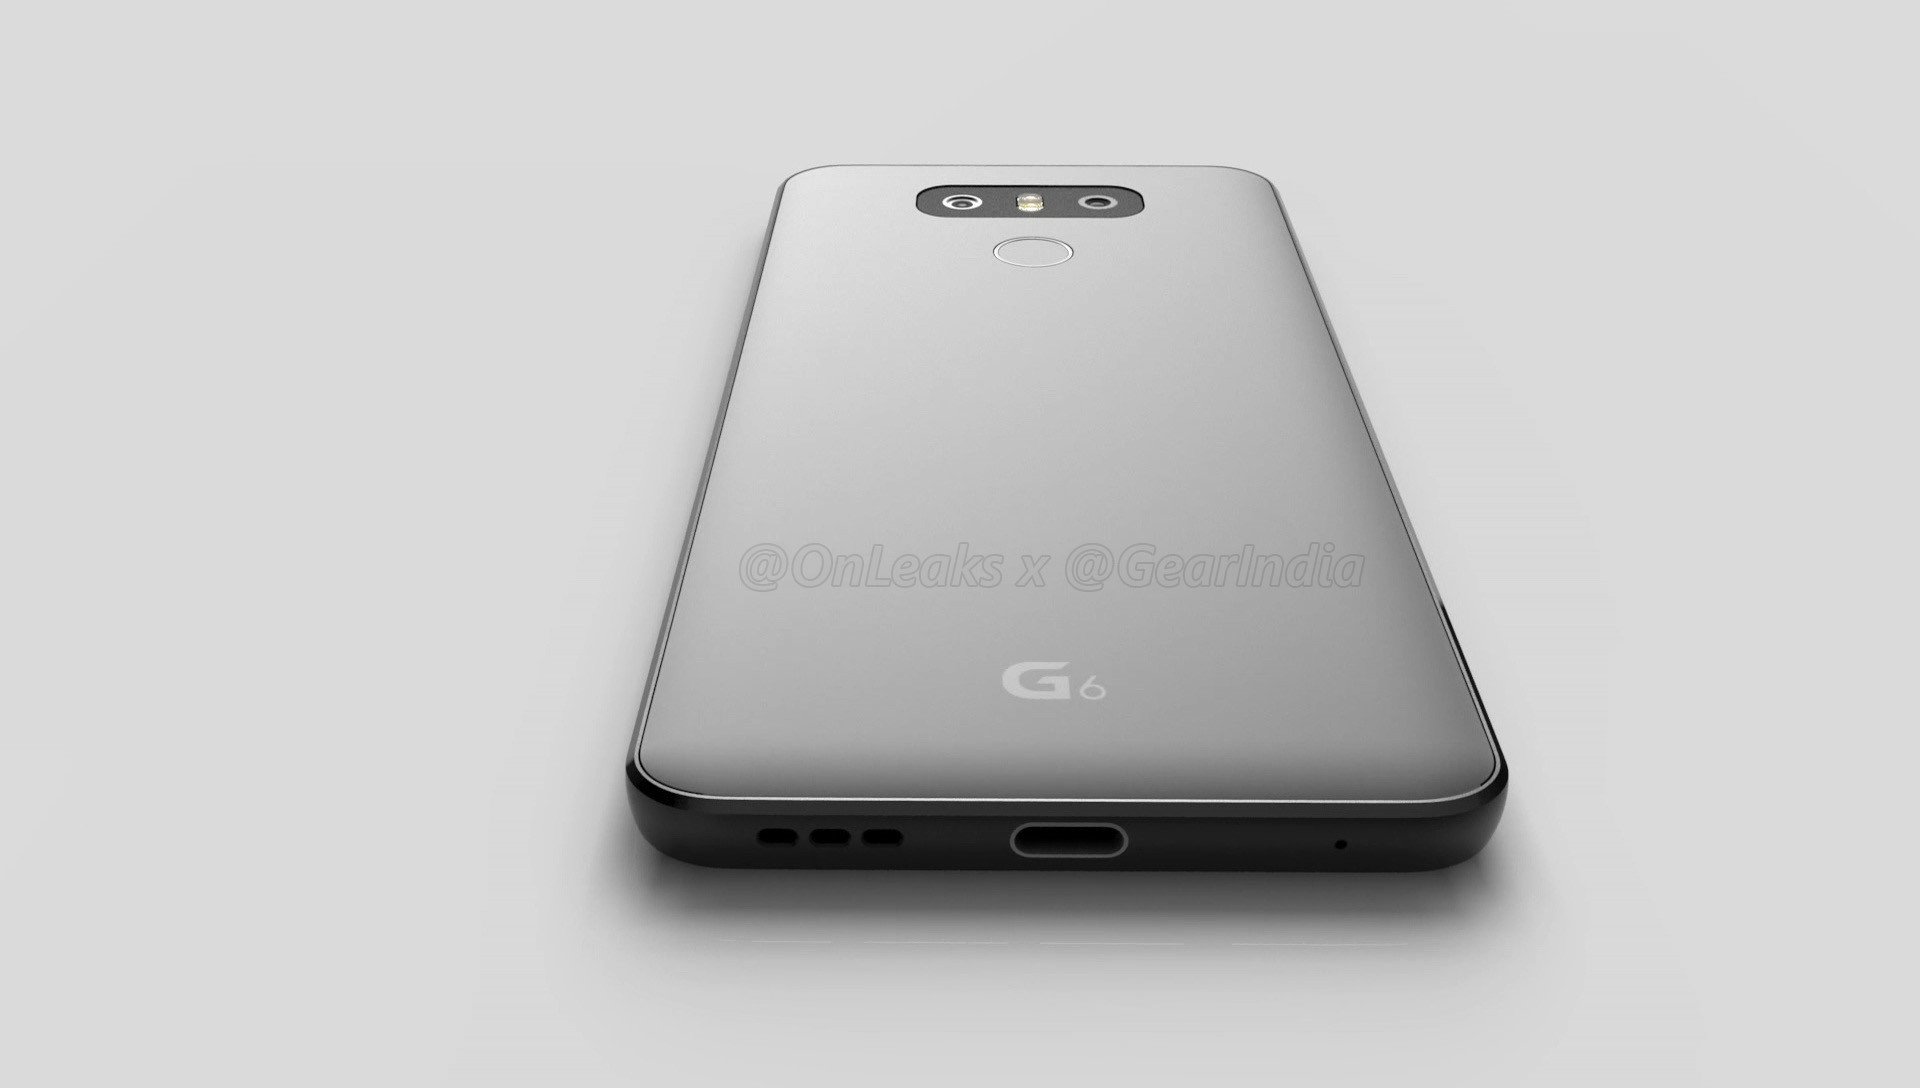 1482906409_renders-of-lg-g6-based-on-factory-cad-images-6.jpg